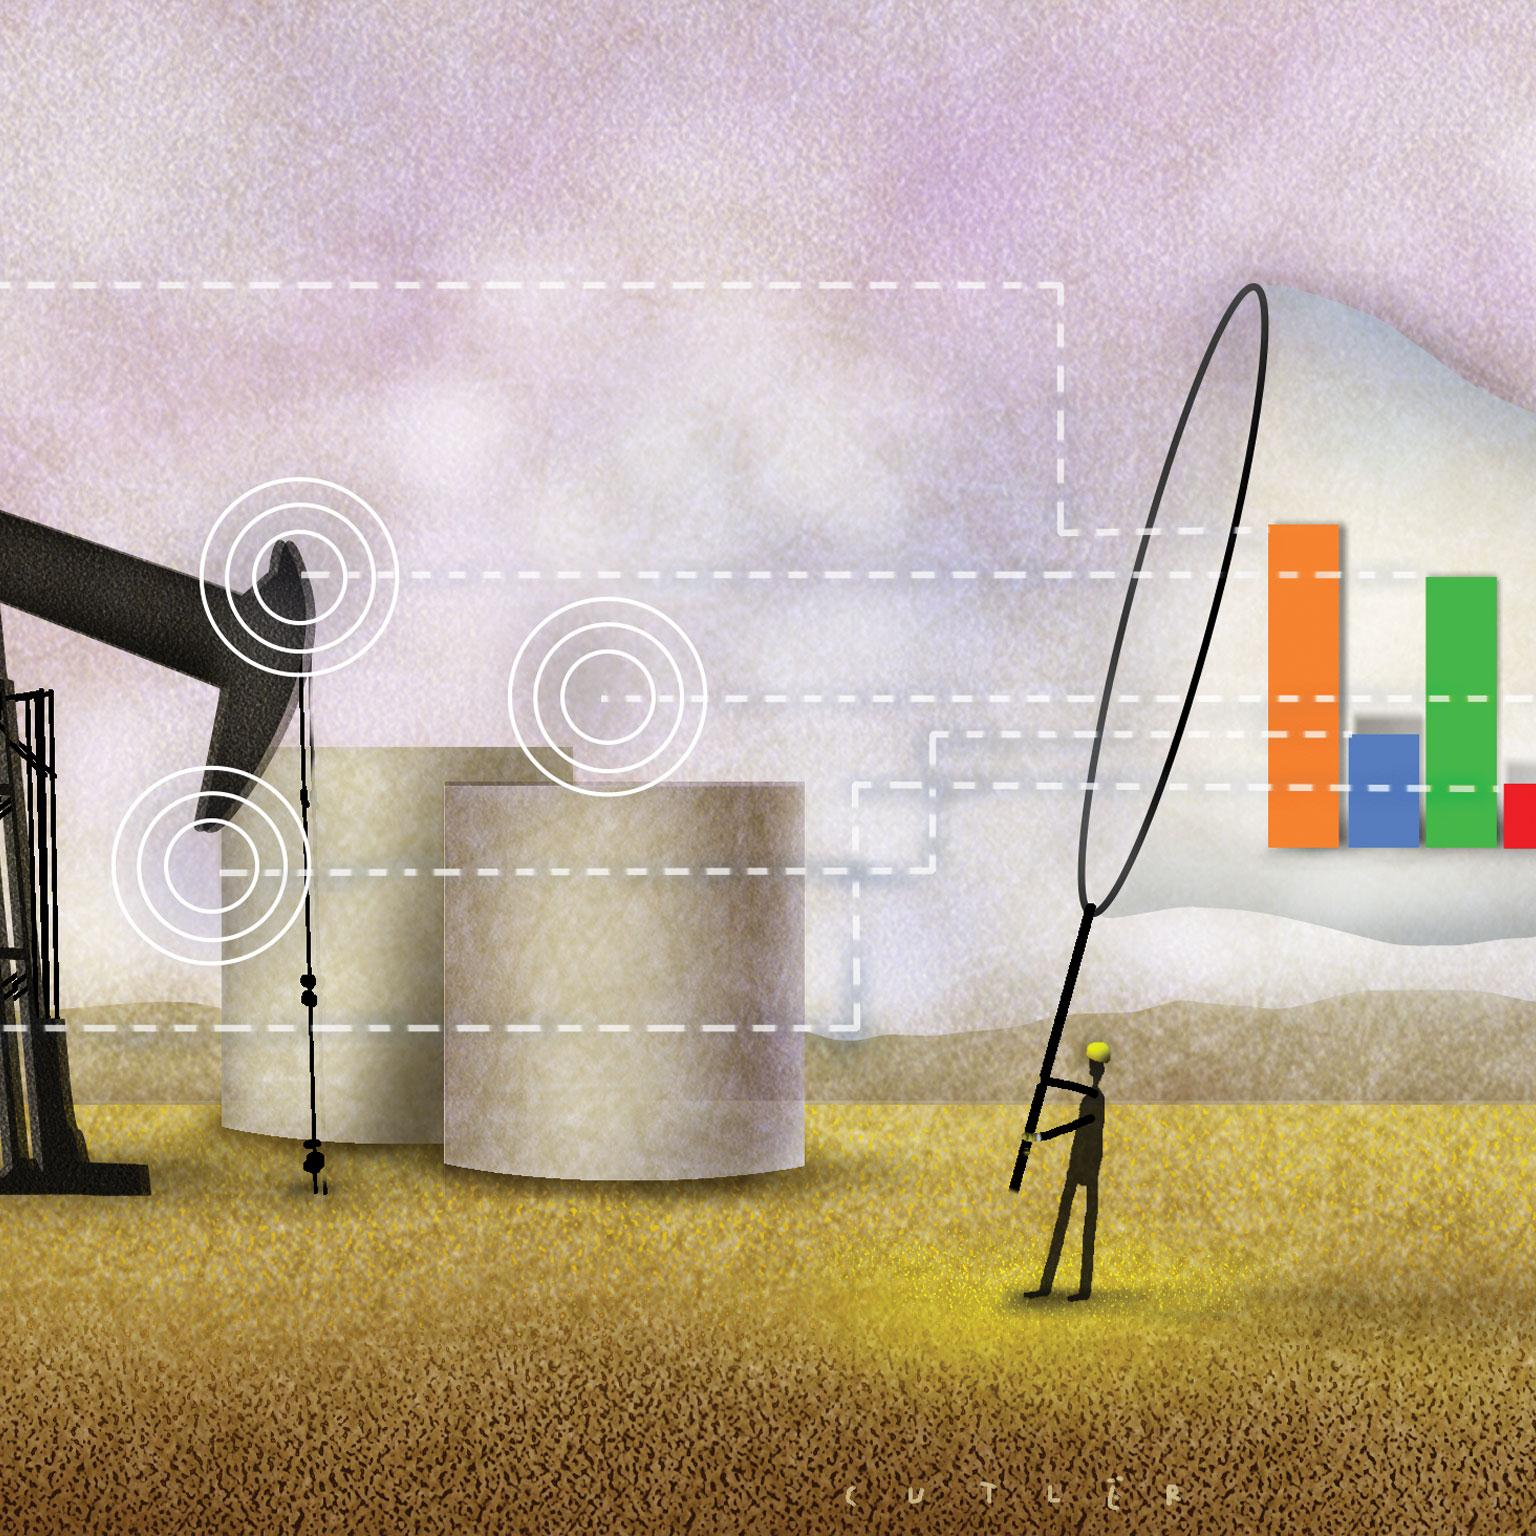 Digitizing oil and gas production | McKinsey